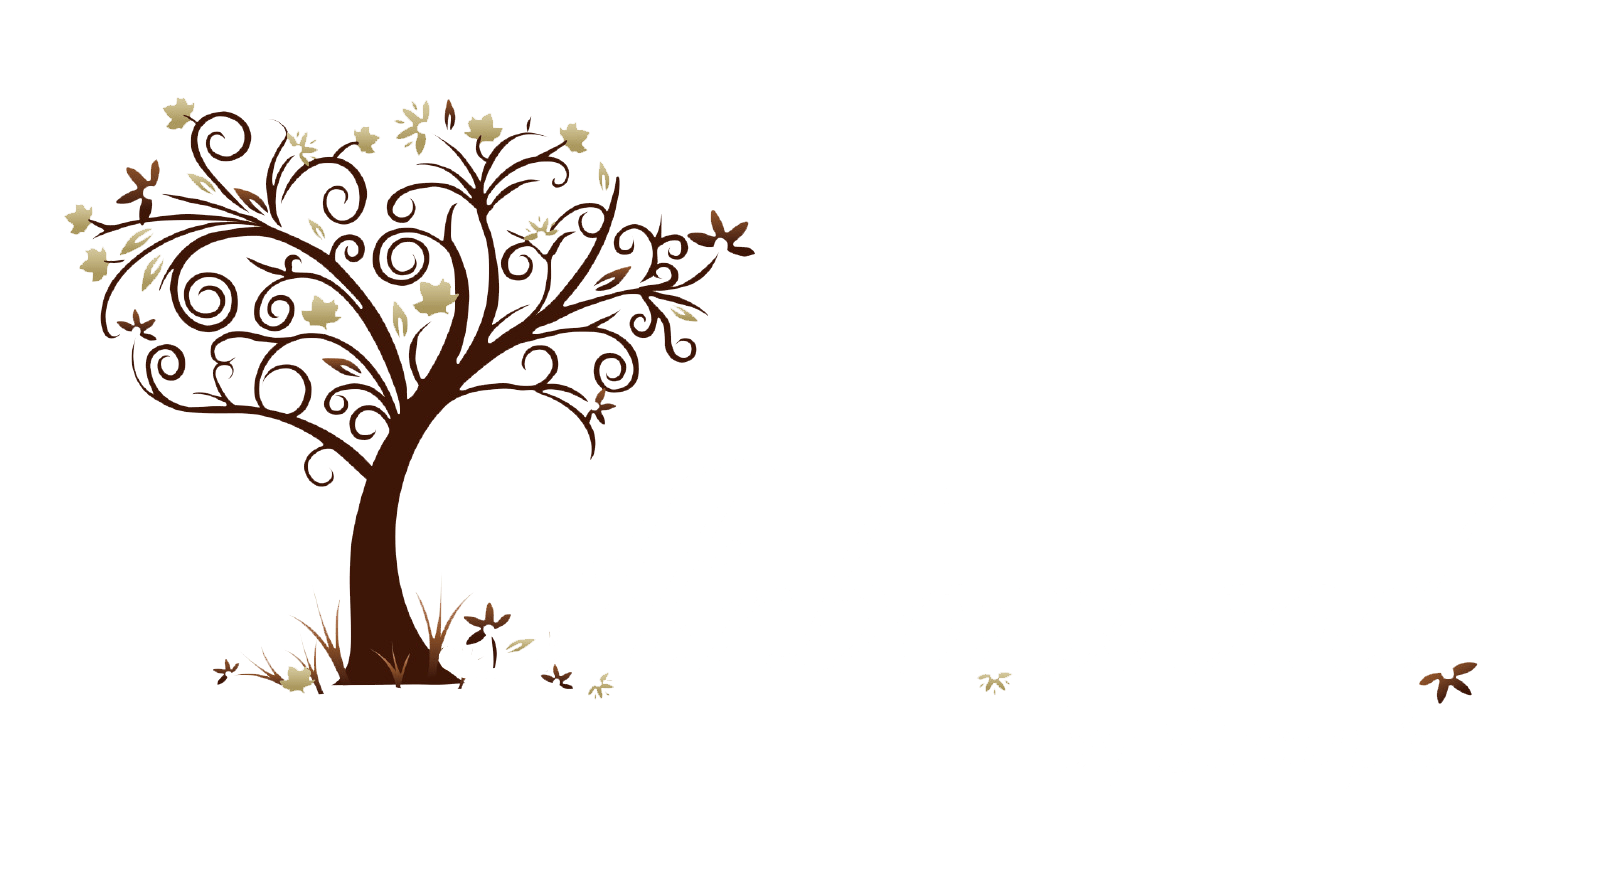 Arborwood by Shoups